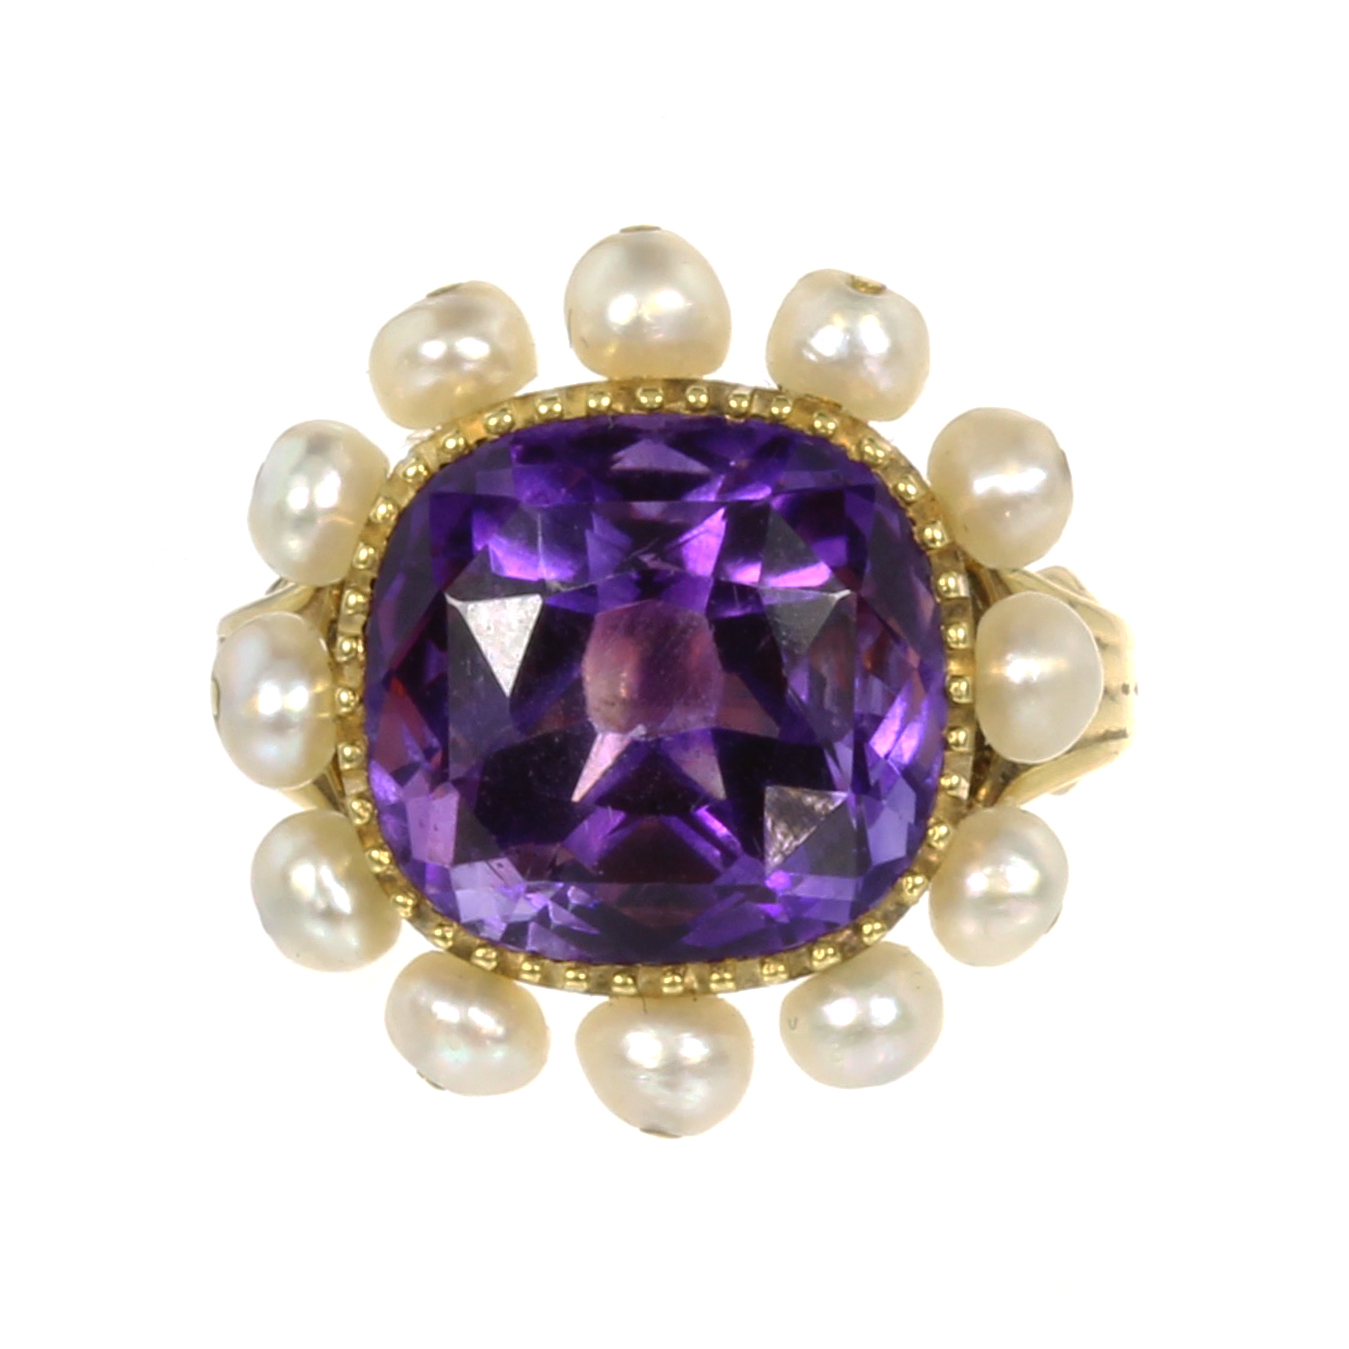 AN AMETHYST AND PEARL DRESS RING set with a central cushion cut amethyst of 8.37 carats within a